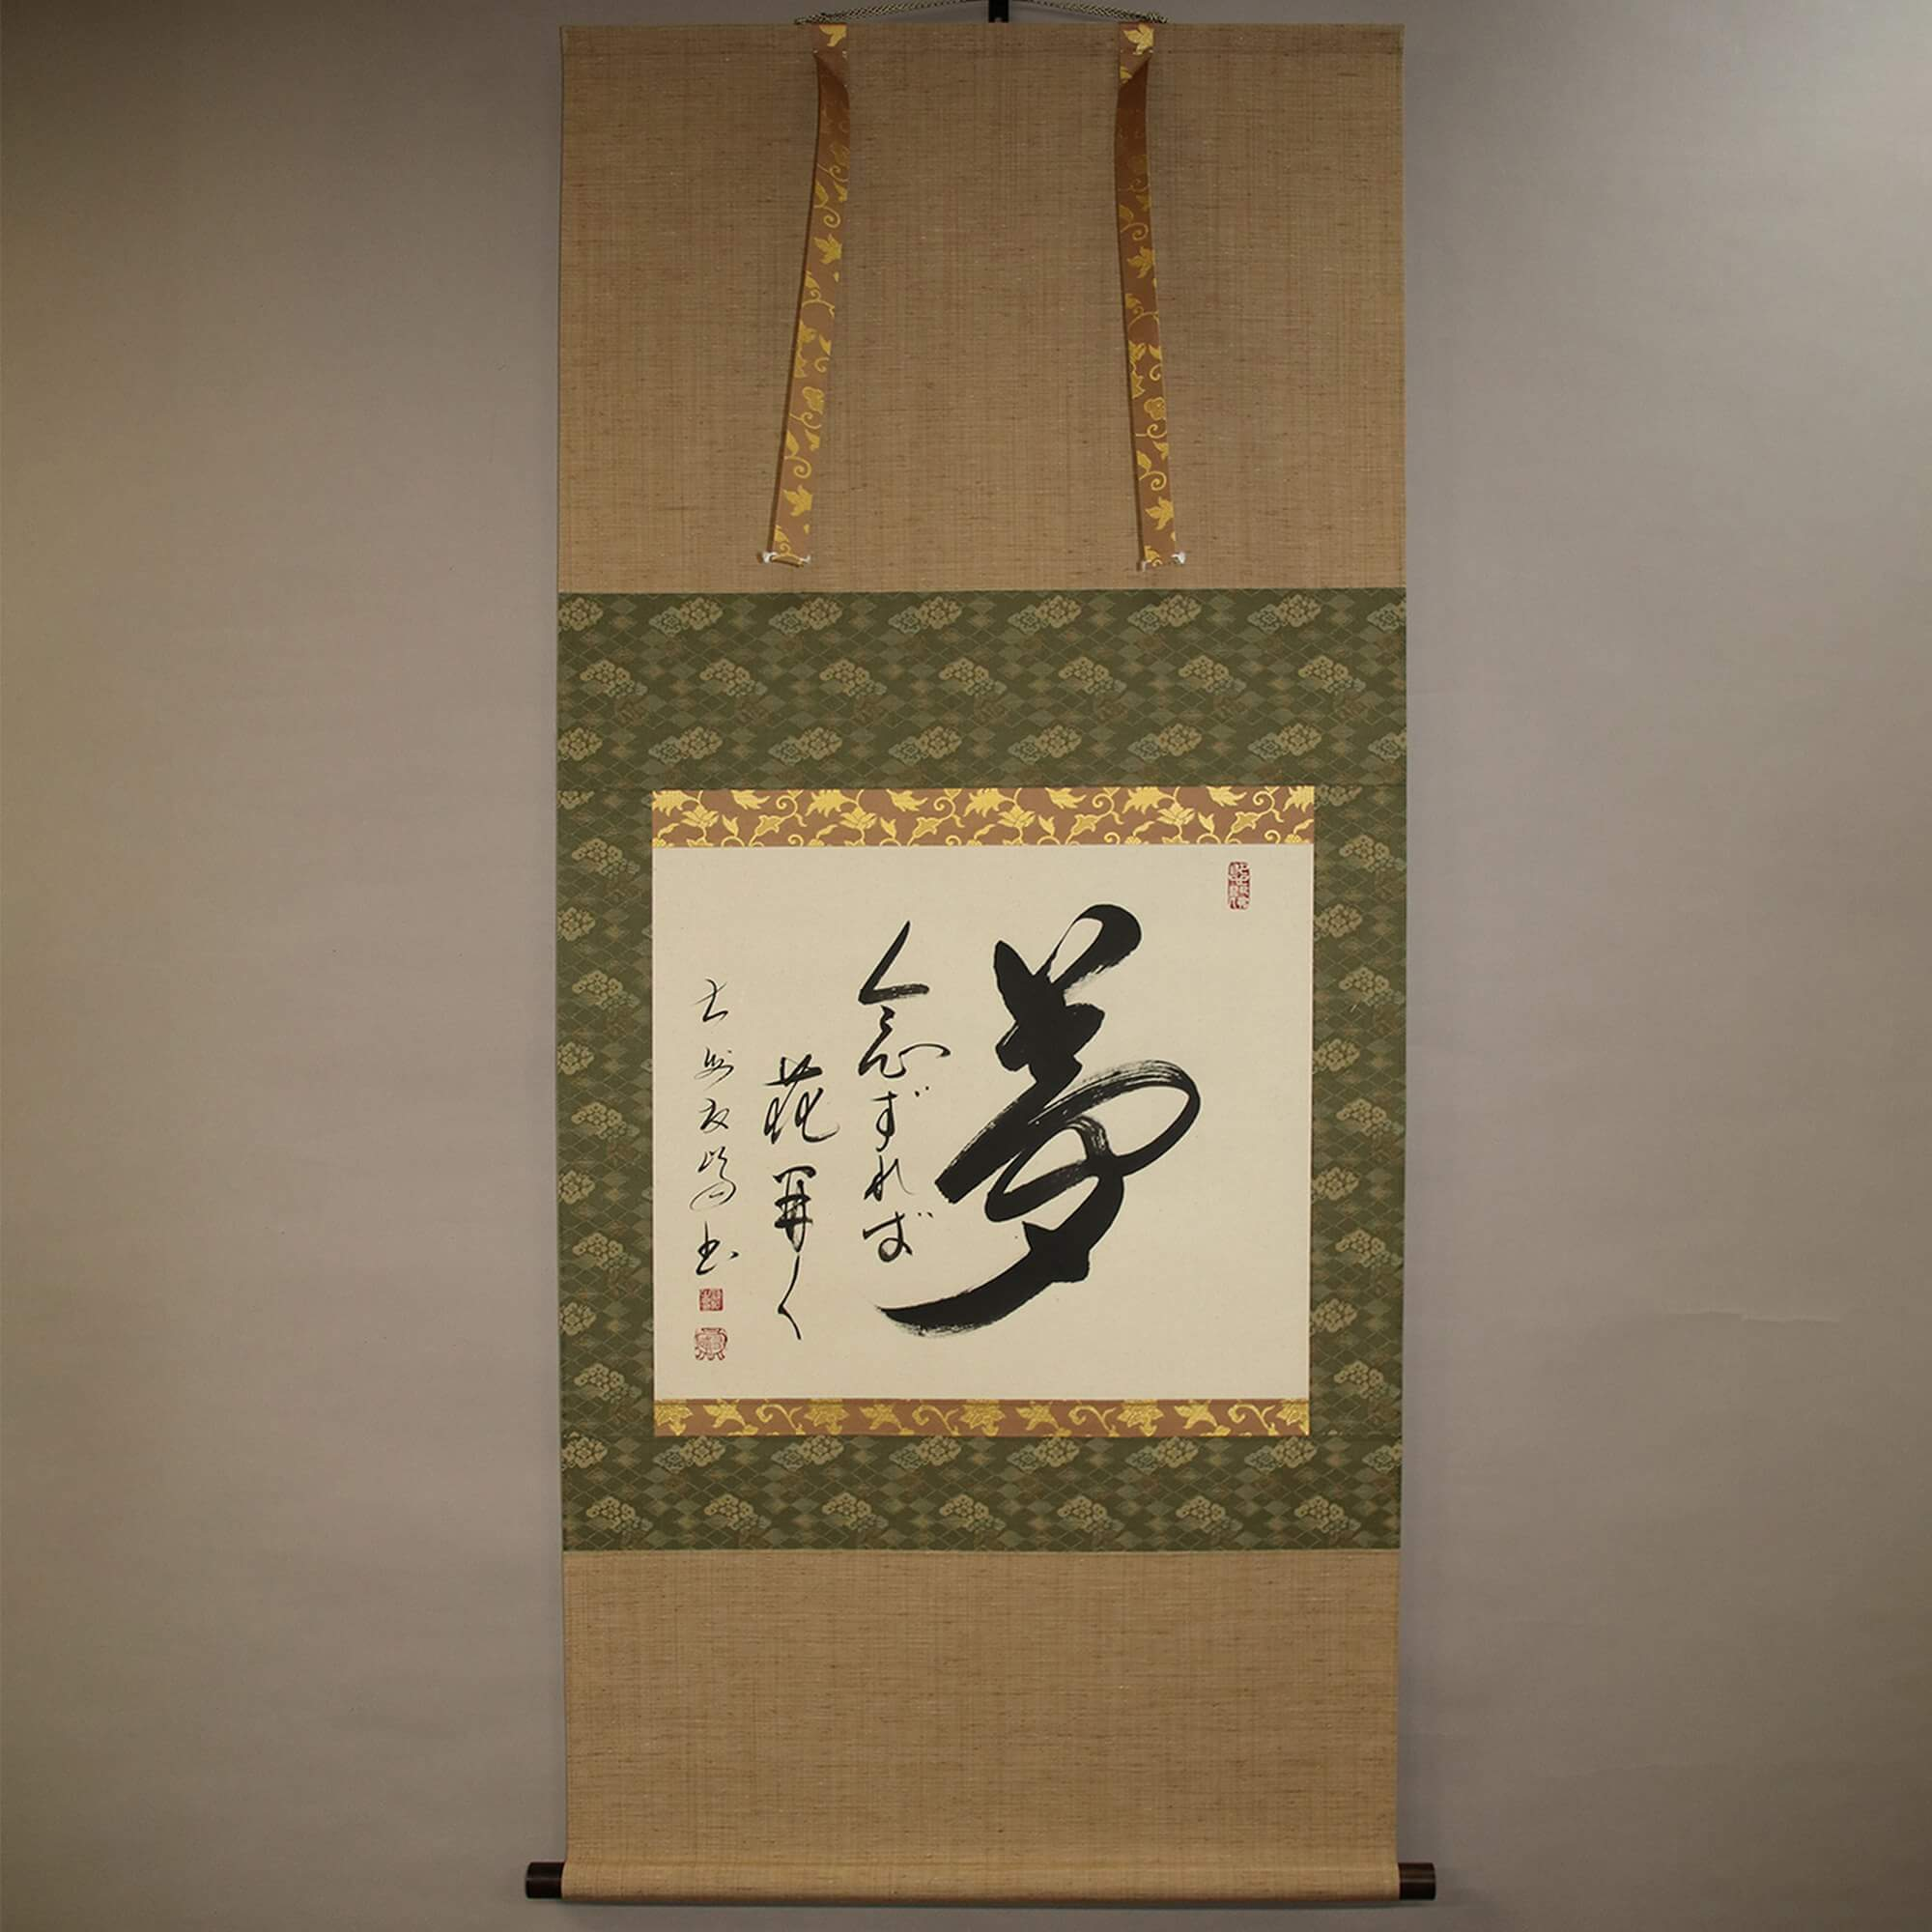 Calligraphy: Dream & If Believes in, It Blooms / Takahashi Yūhō